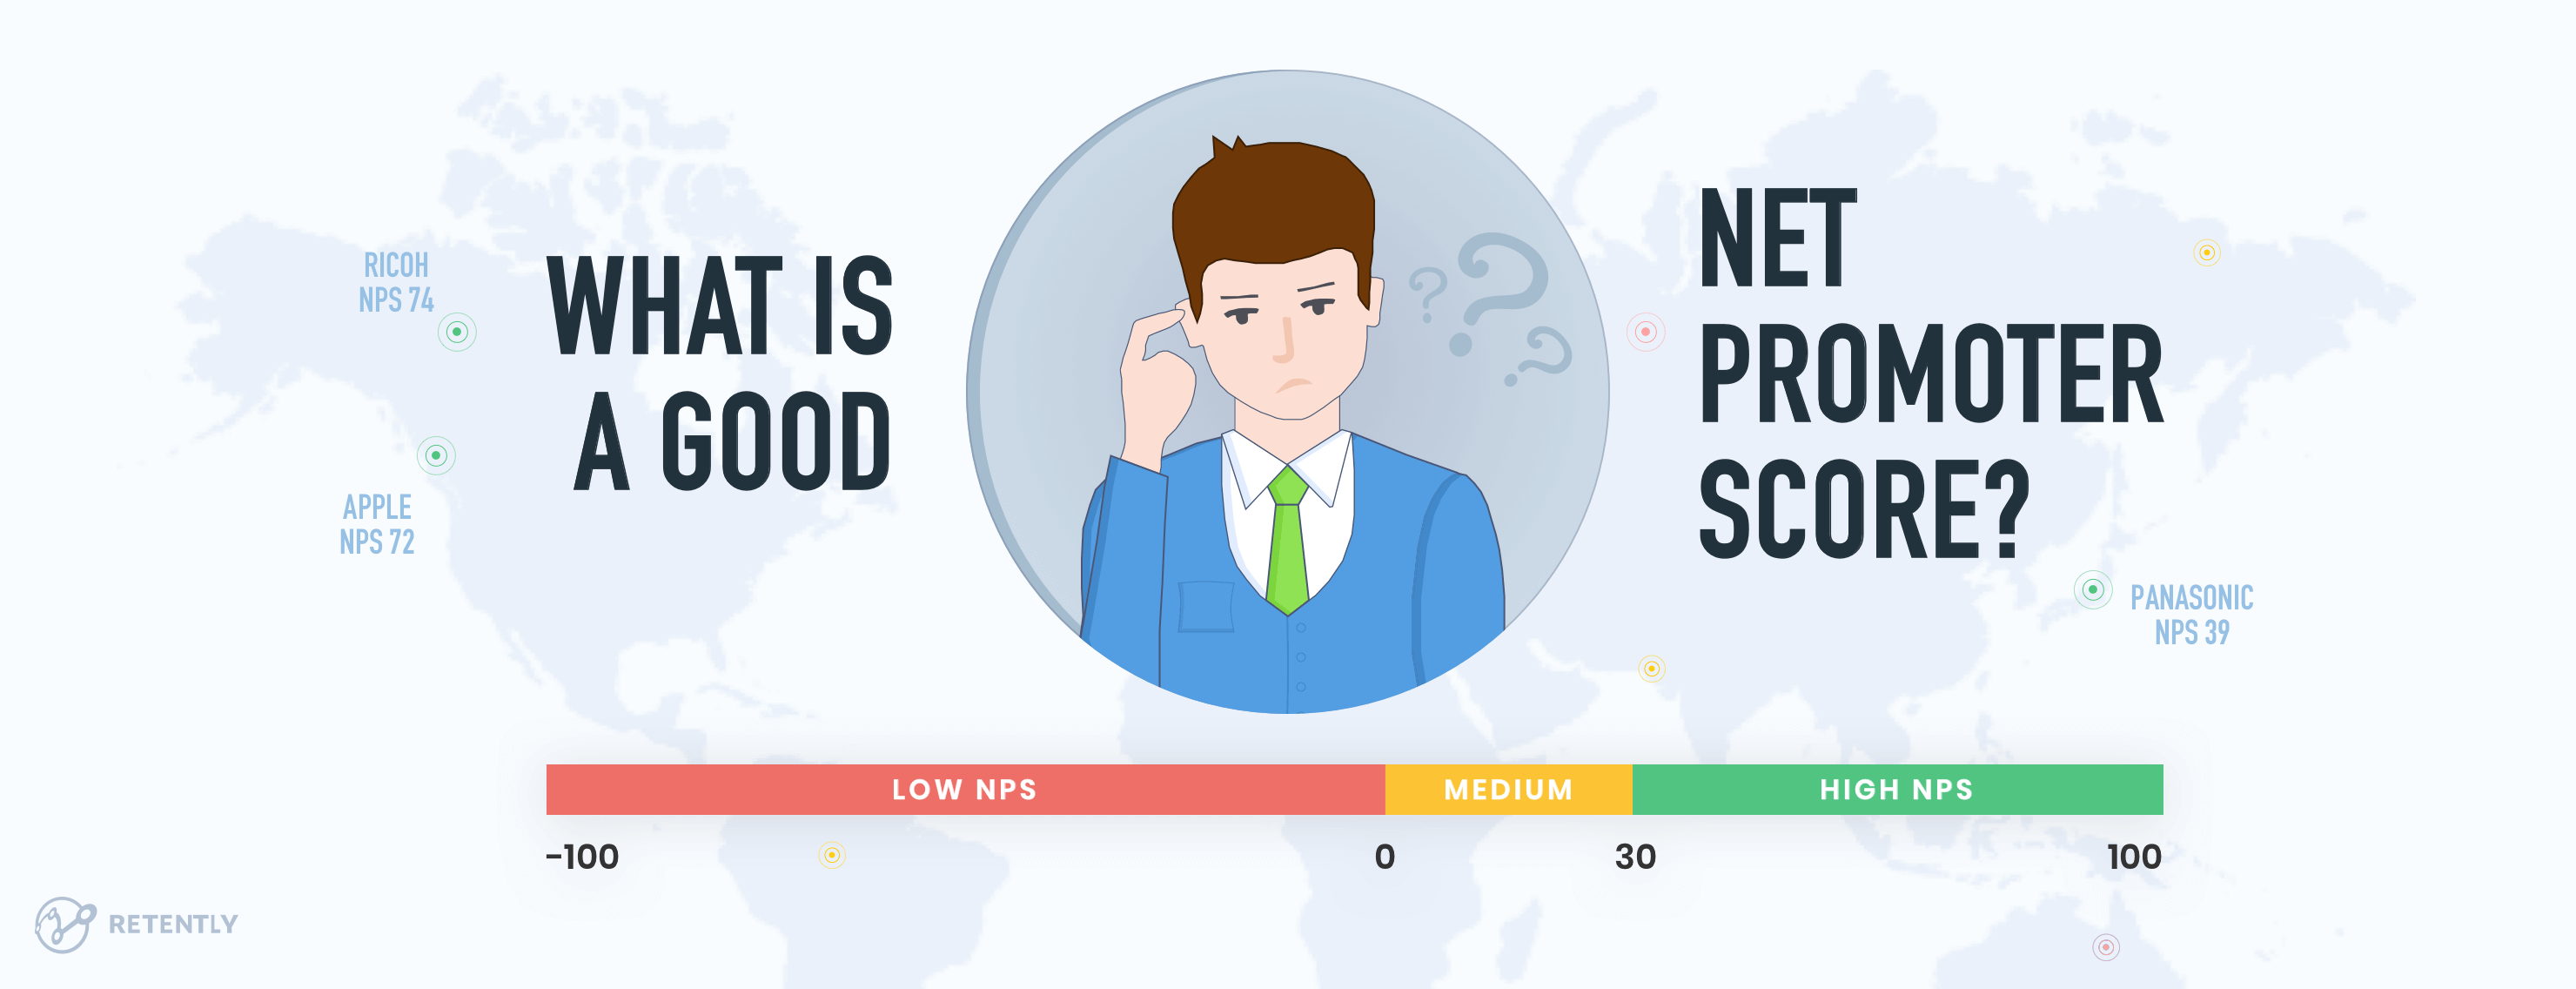 What is a Good Net Promoter Score? (2020 NPS Benchmark)